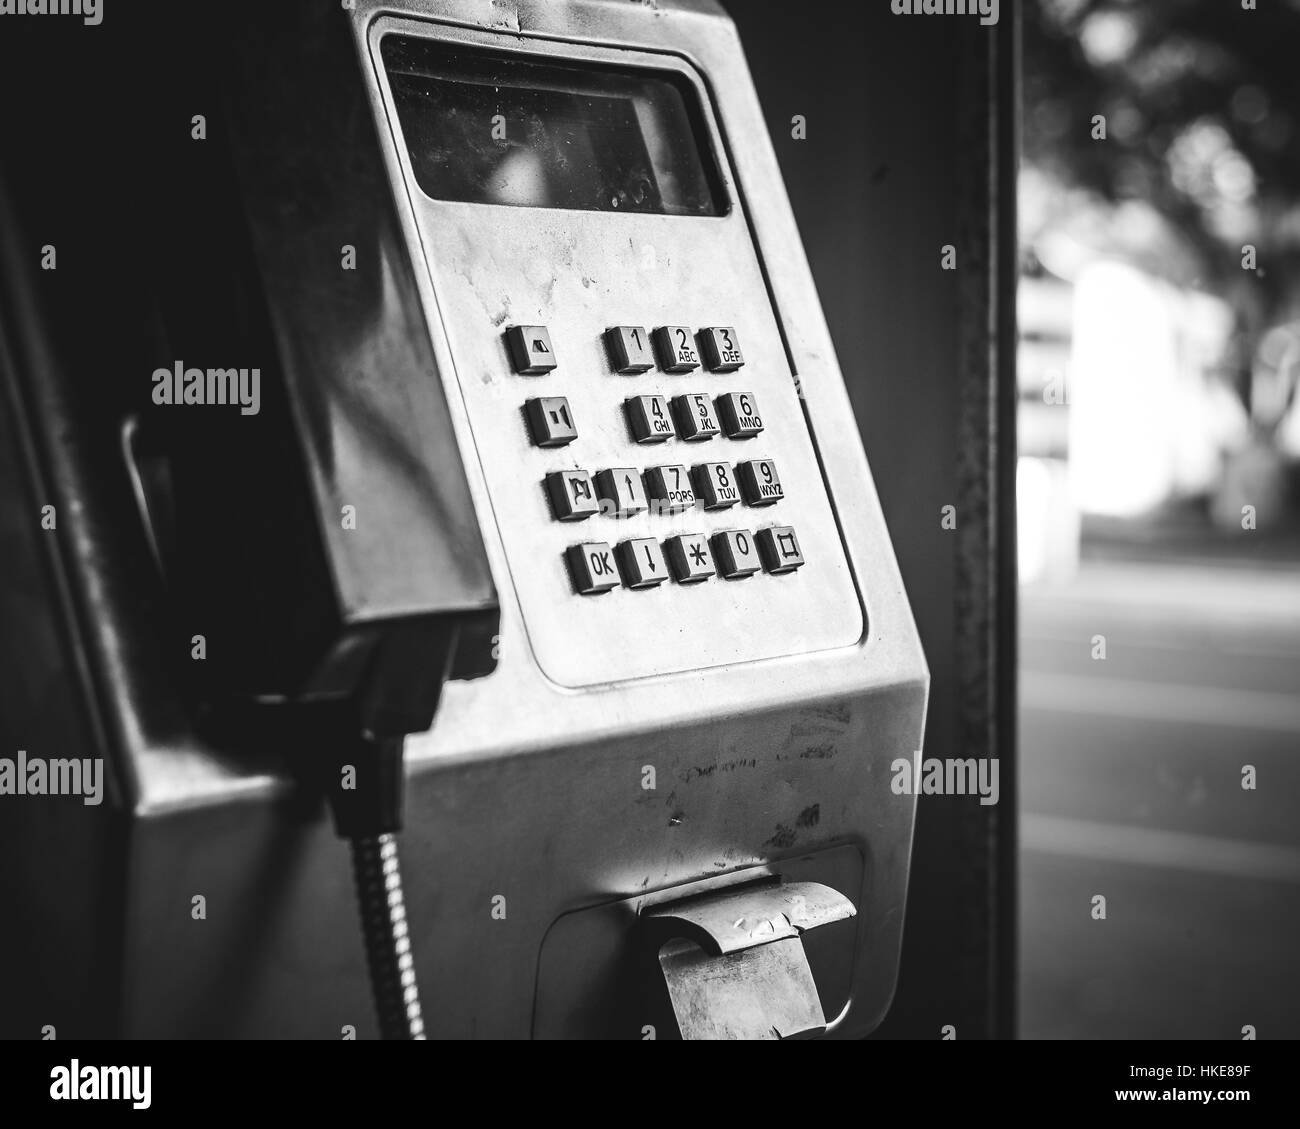 Payphone in phone box black and white - Stock Image